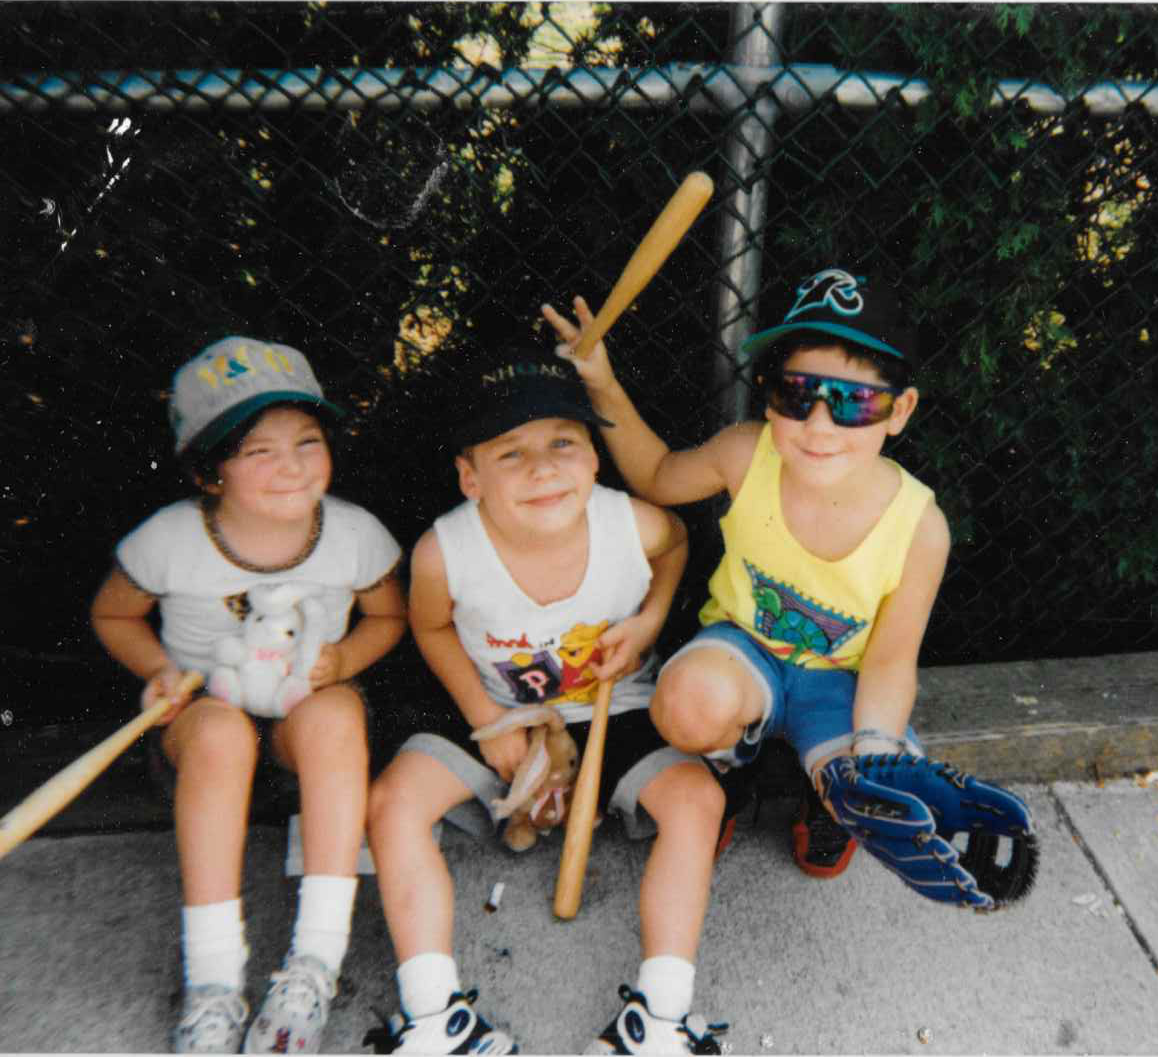 picture of three young children at baseball game, holding souvenir bats and one is giving ears to cousin